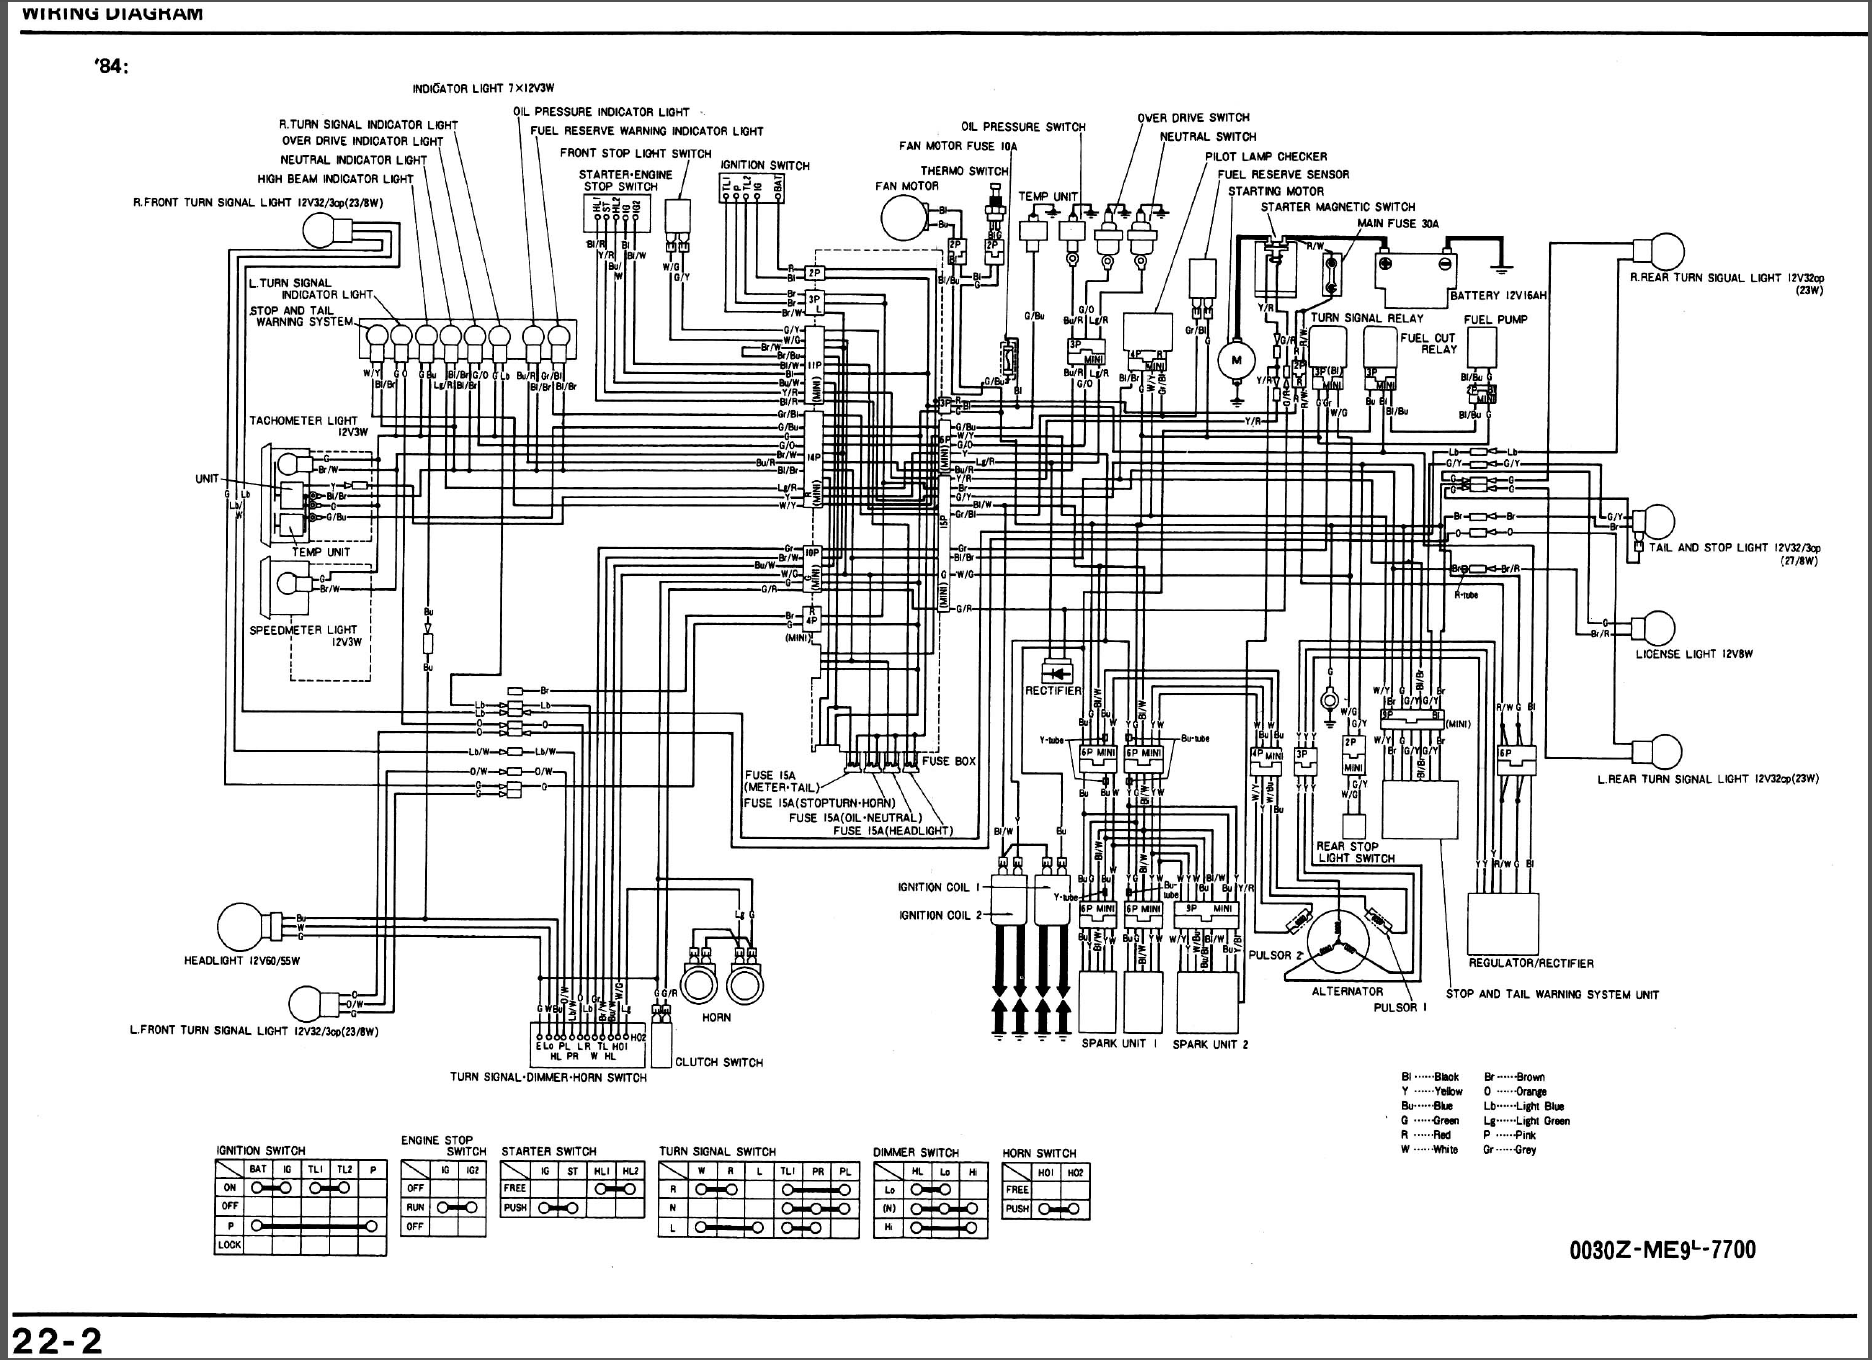 9265d1409799690 1984 honda shadow 700 wireing diagram b 1984 honda shadow 700 1985 vt700c wiring diagram at eliteediting.co